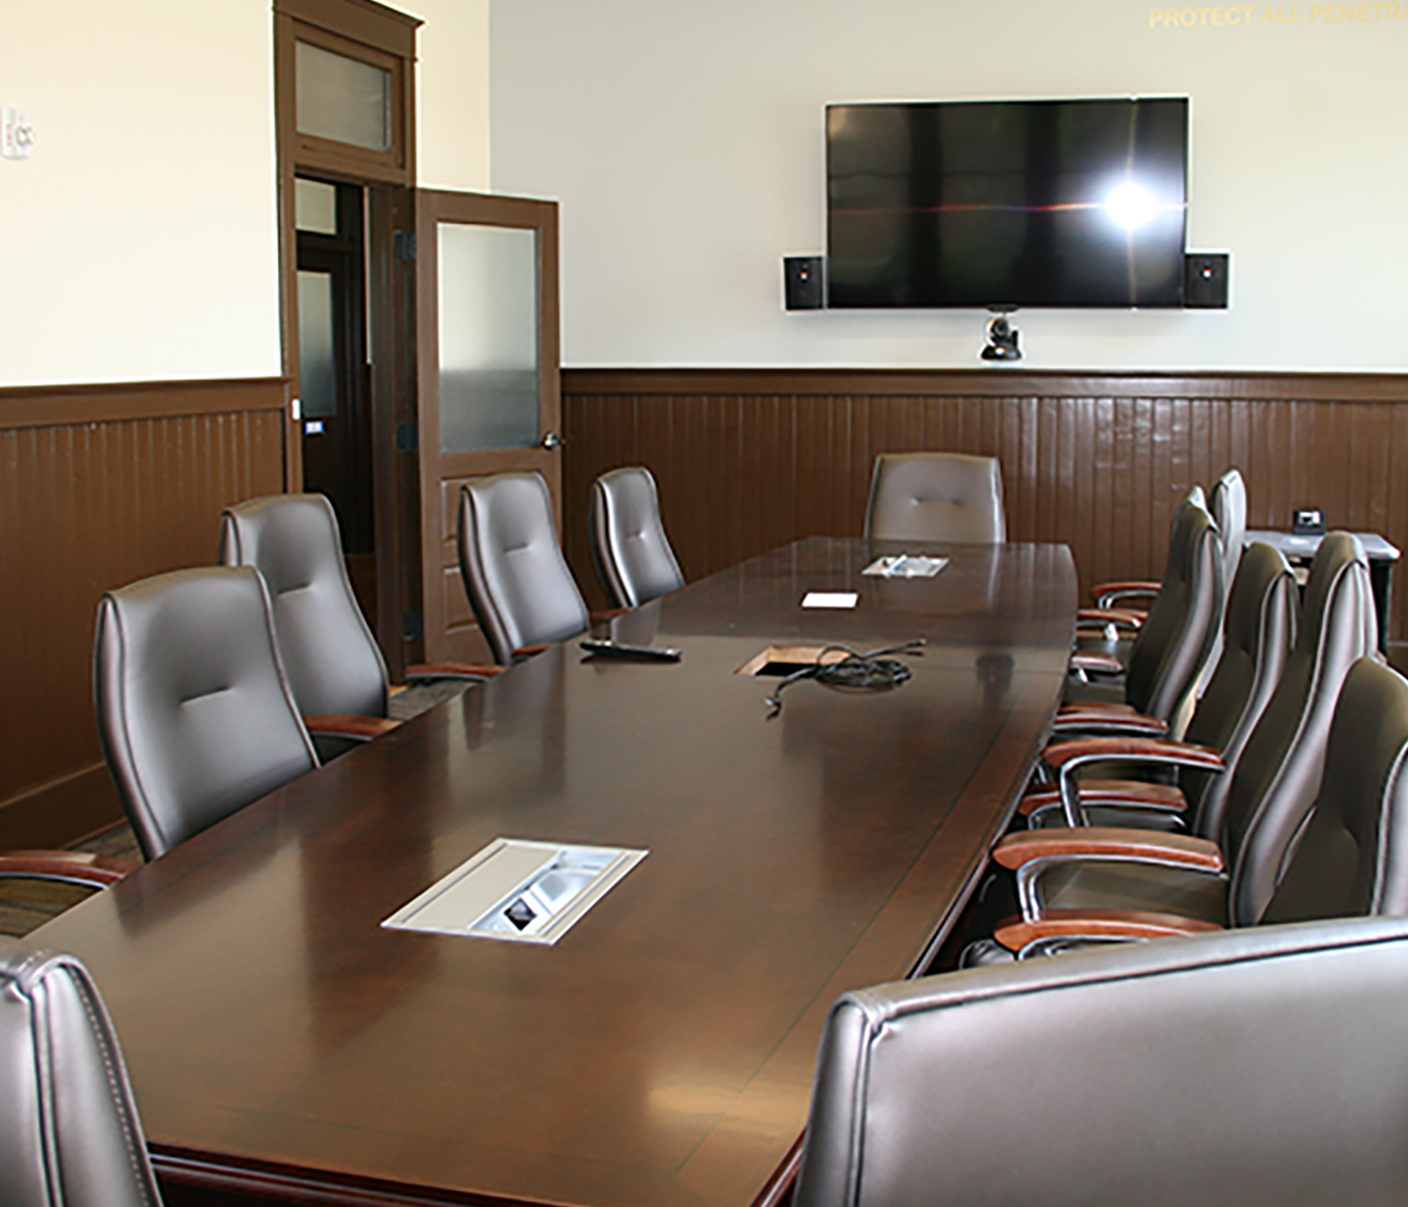 UGA Tifton's Tift Building has a board room on the second floor, designed to host meetings.